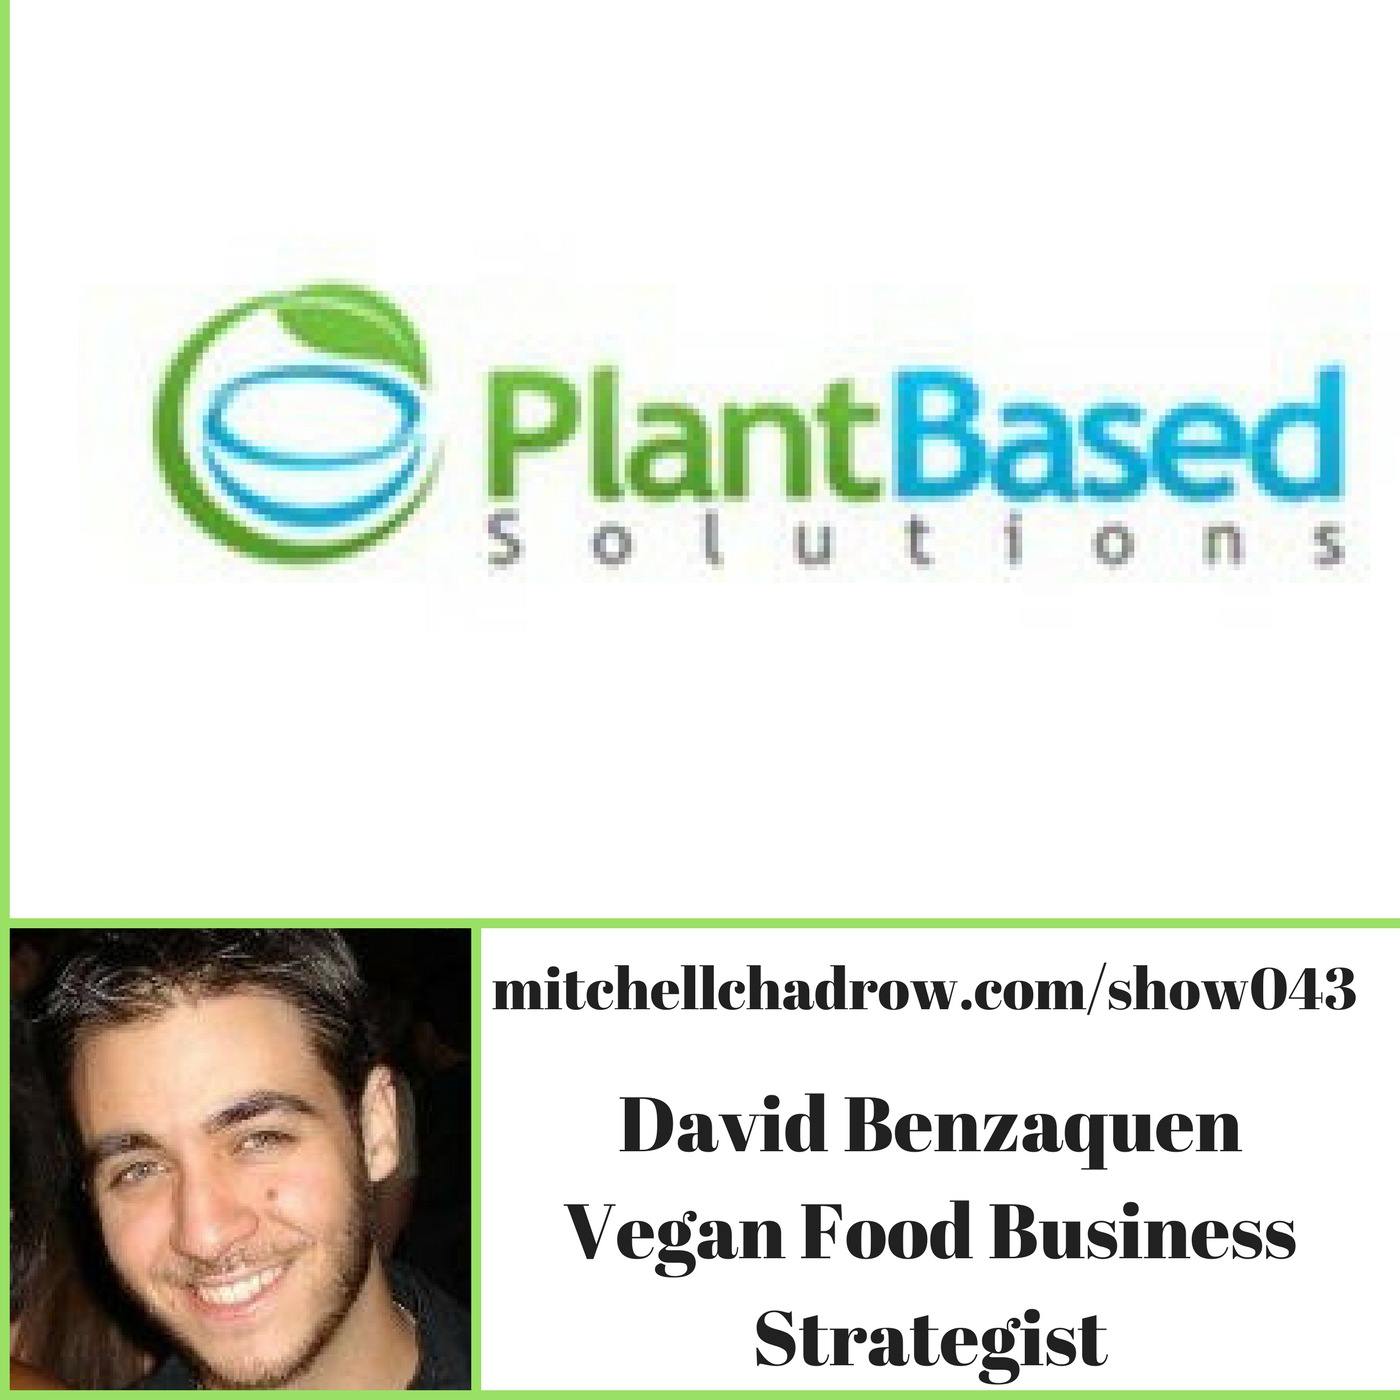 Mitchell chadrow interviews entrepreneurs and businesses vegan food business strategist plant based solutions agency founder david benzaquen show 043 fandeluxe Image collections